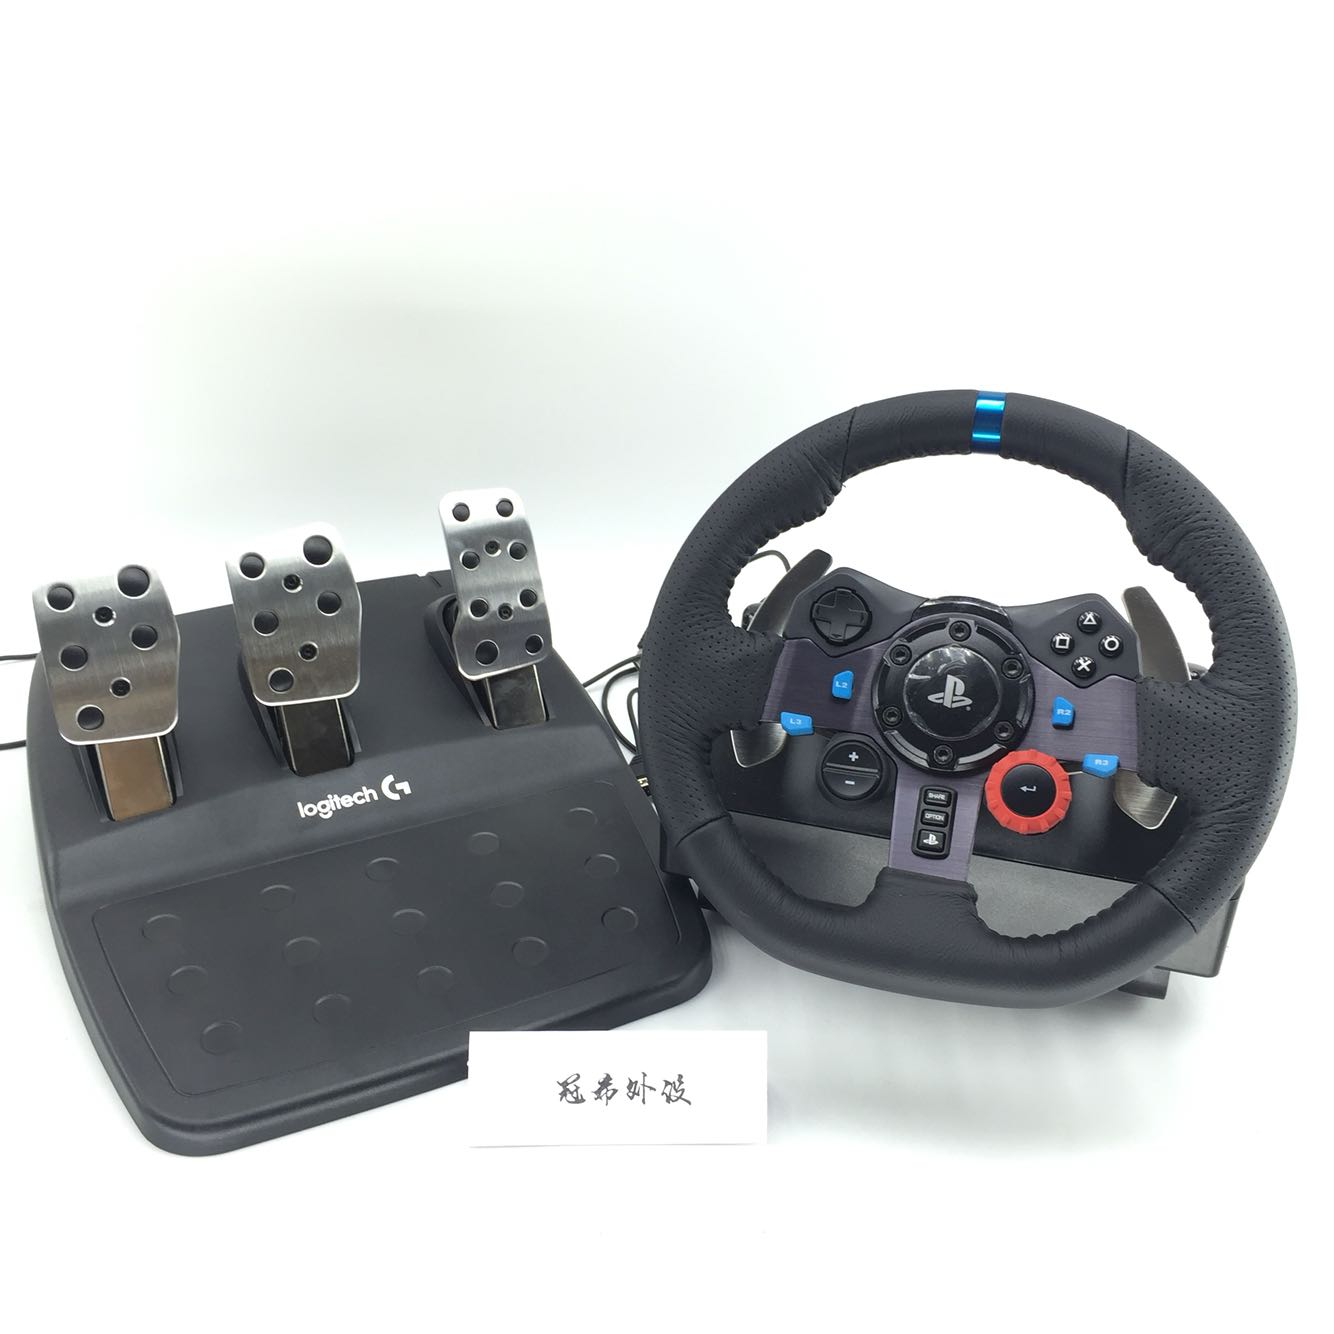 Crown peripheral Logitech g29 G920 Xbox ps3 ps4 PC gaming steering wheel  G27 upgrade